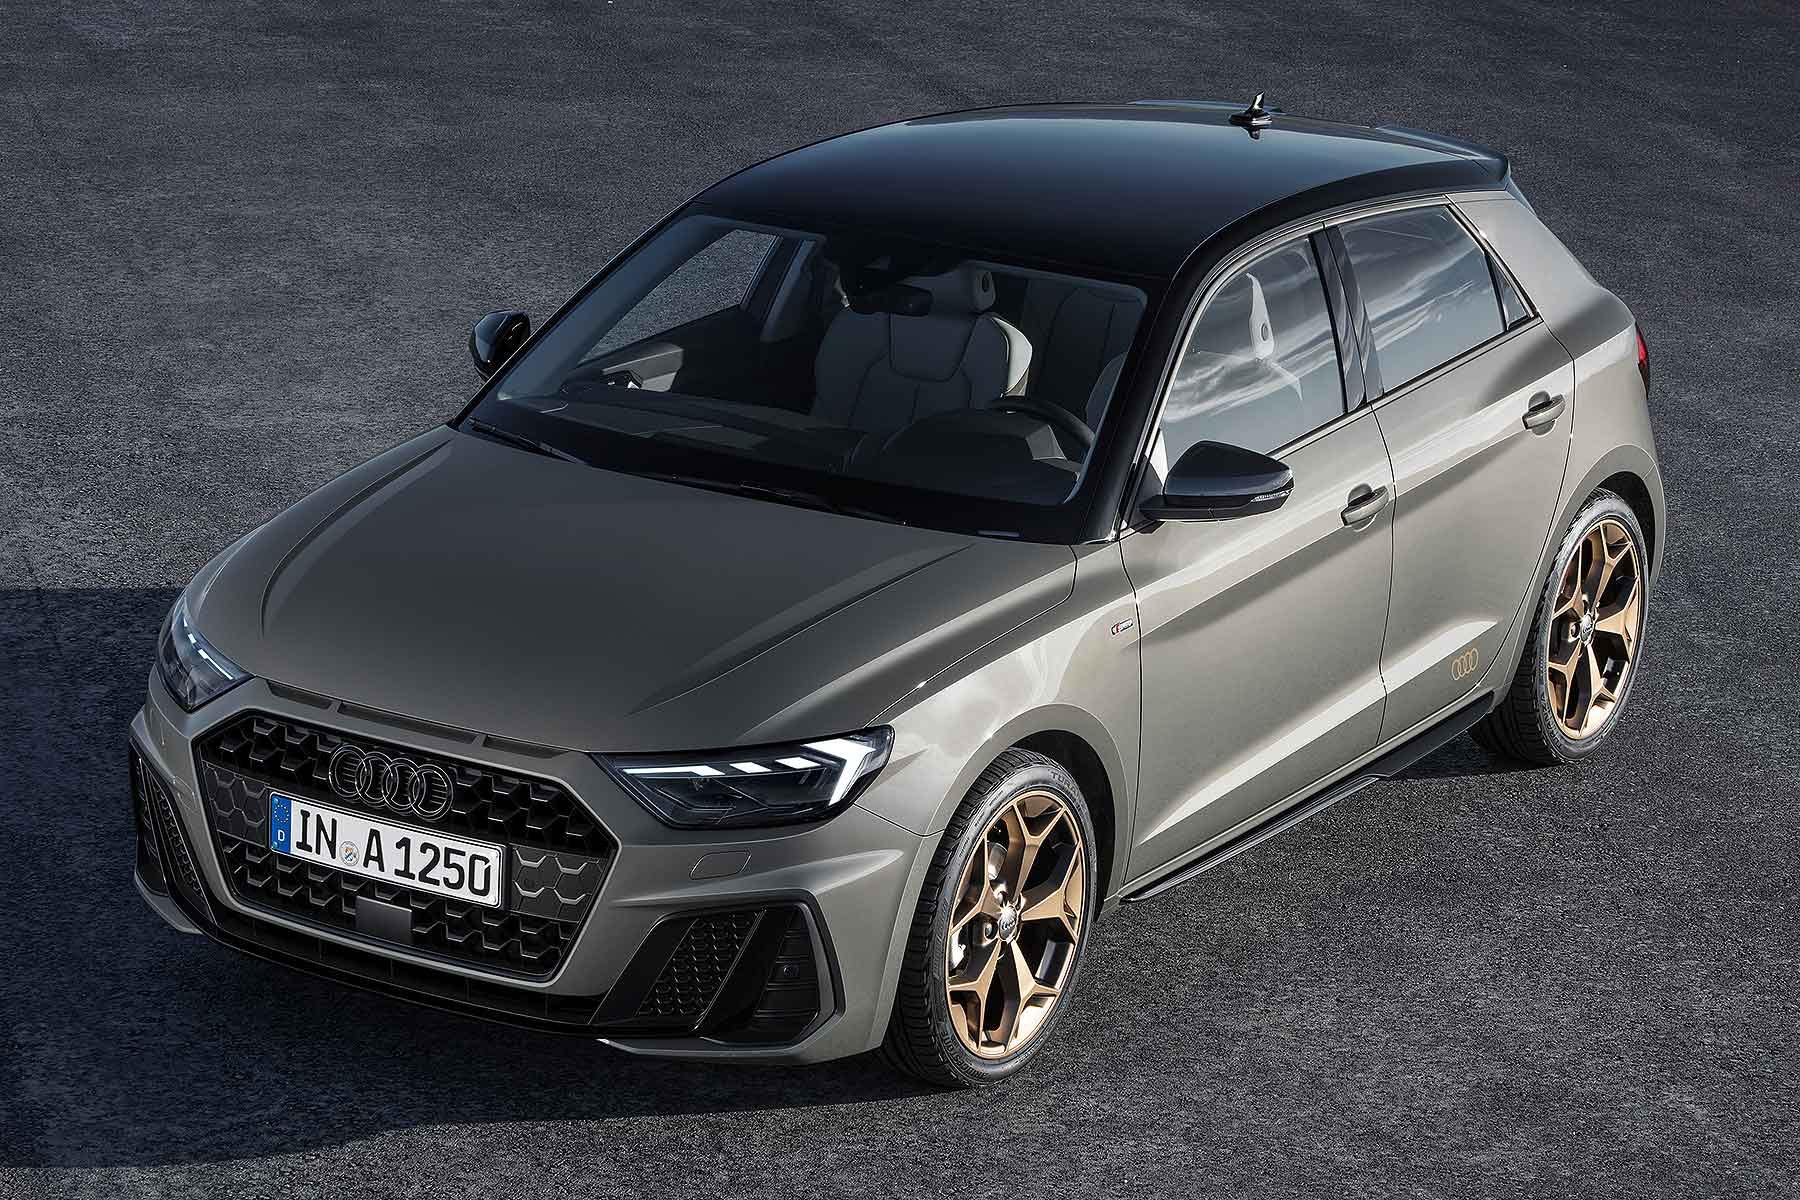 New 2018 Audi A1 The Mix And Match Supermini Motoring